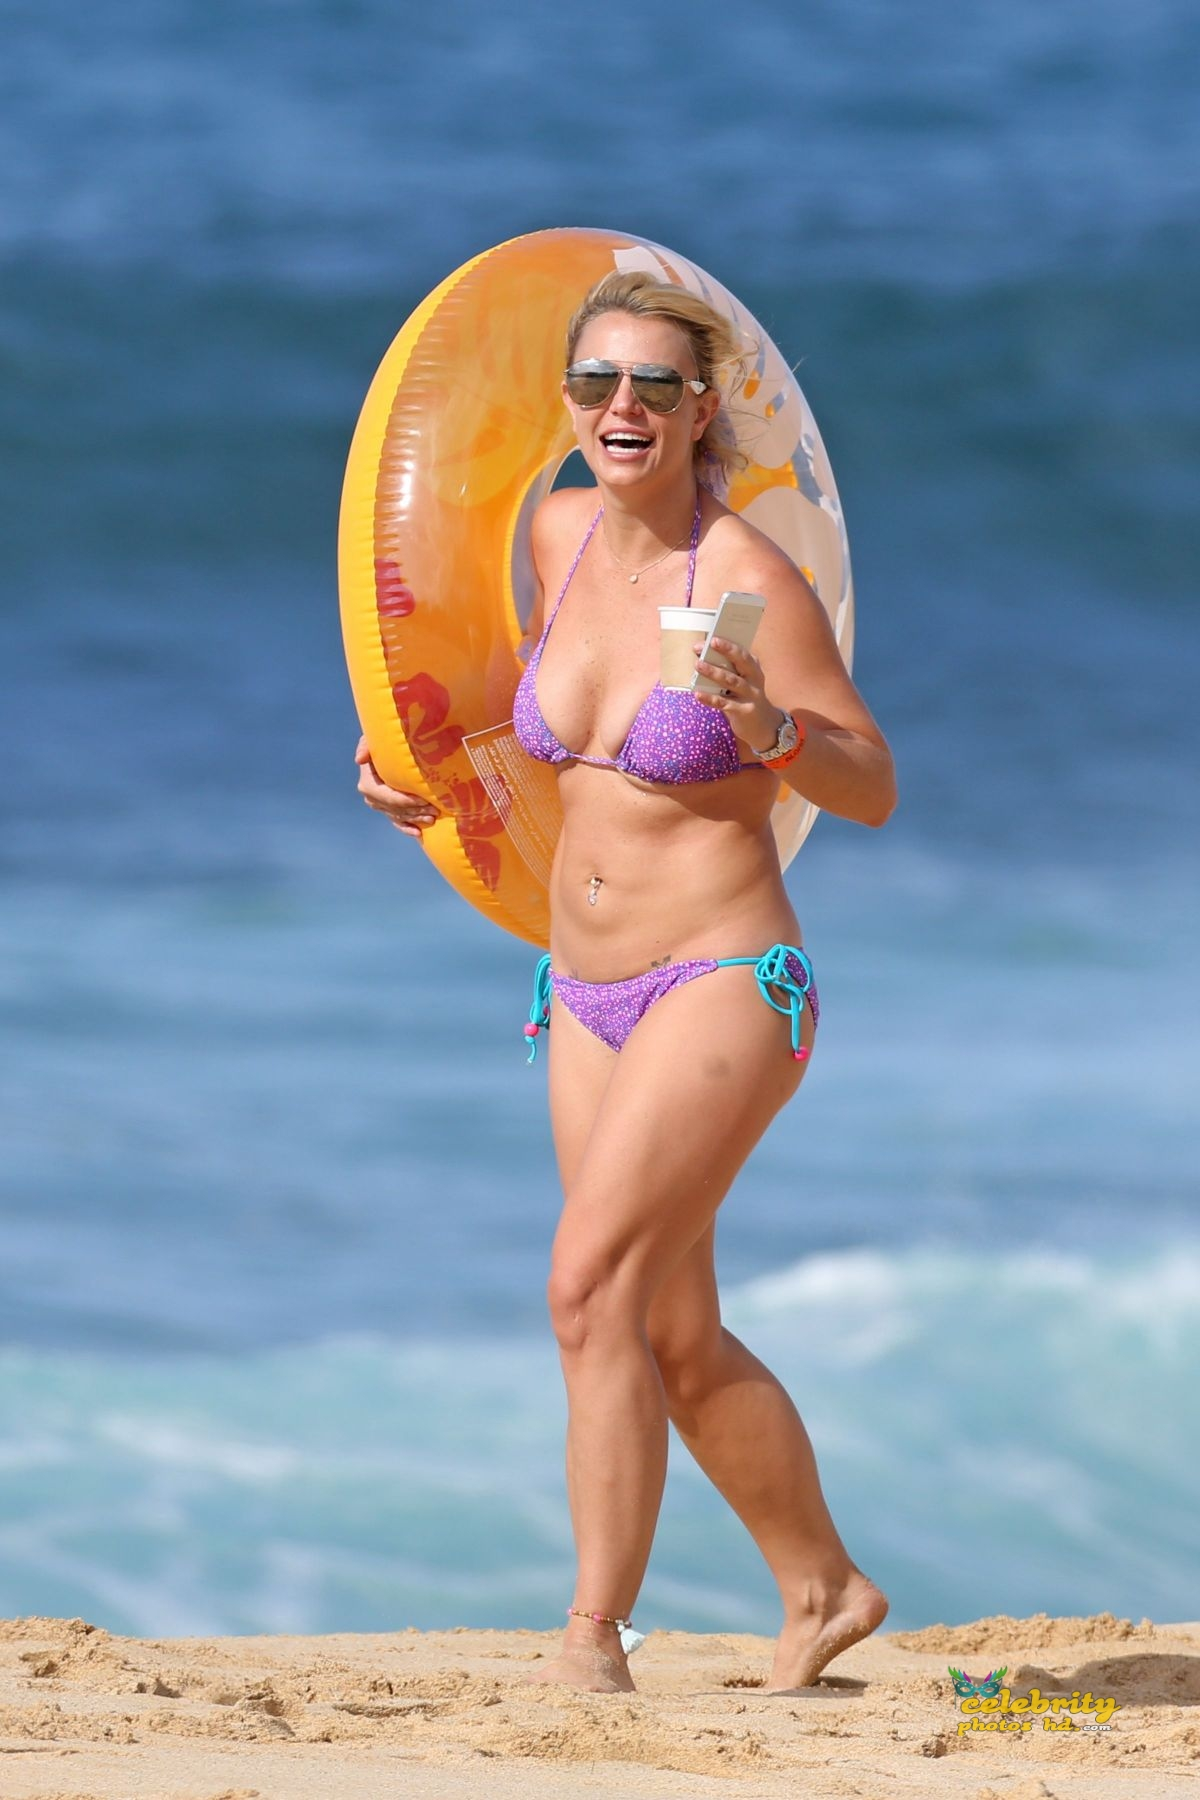 britney-spears-in-bikini-at-a-beach-in-hawaii-07-23-2015_4